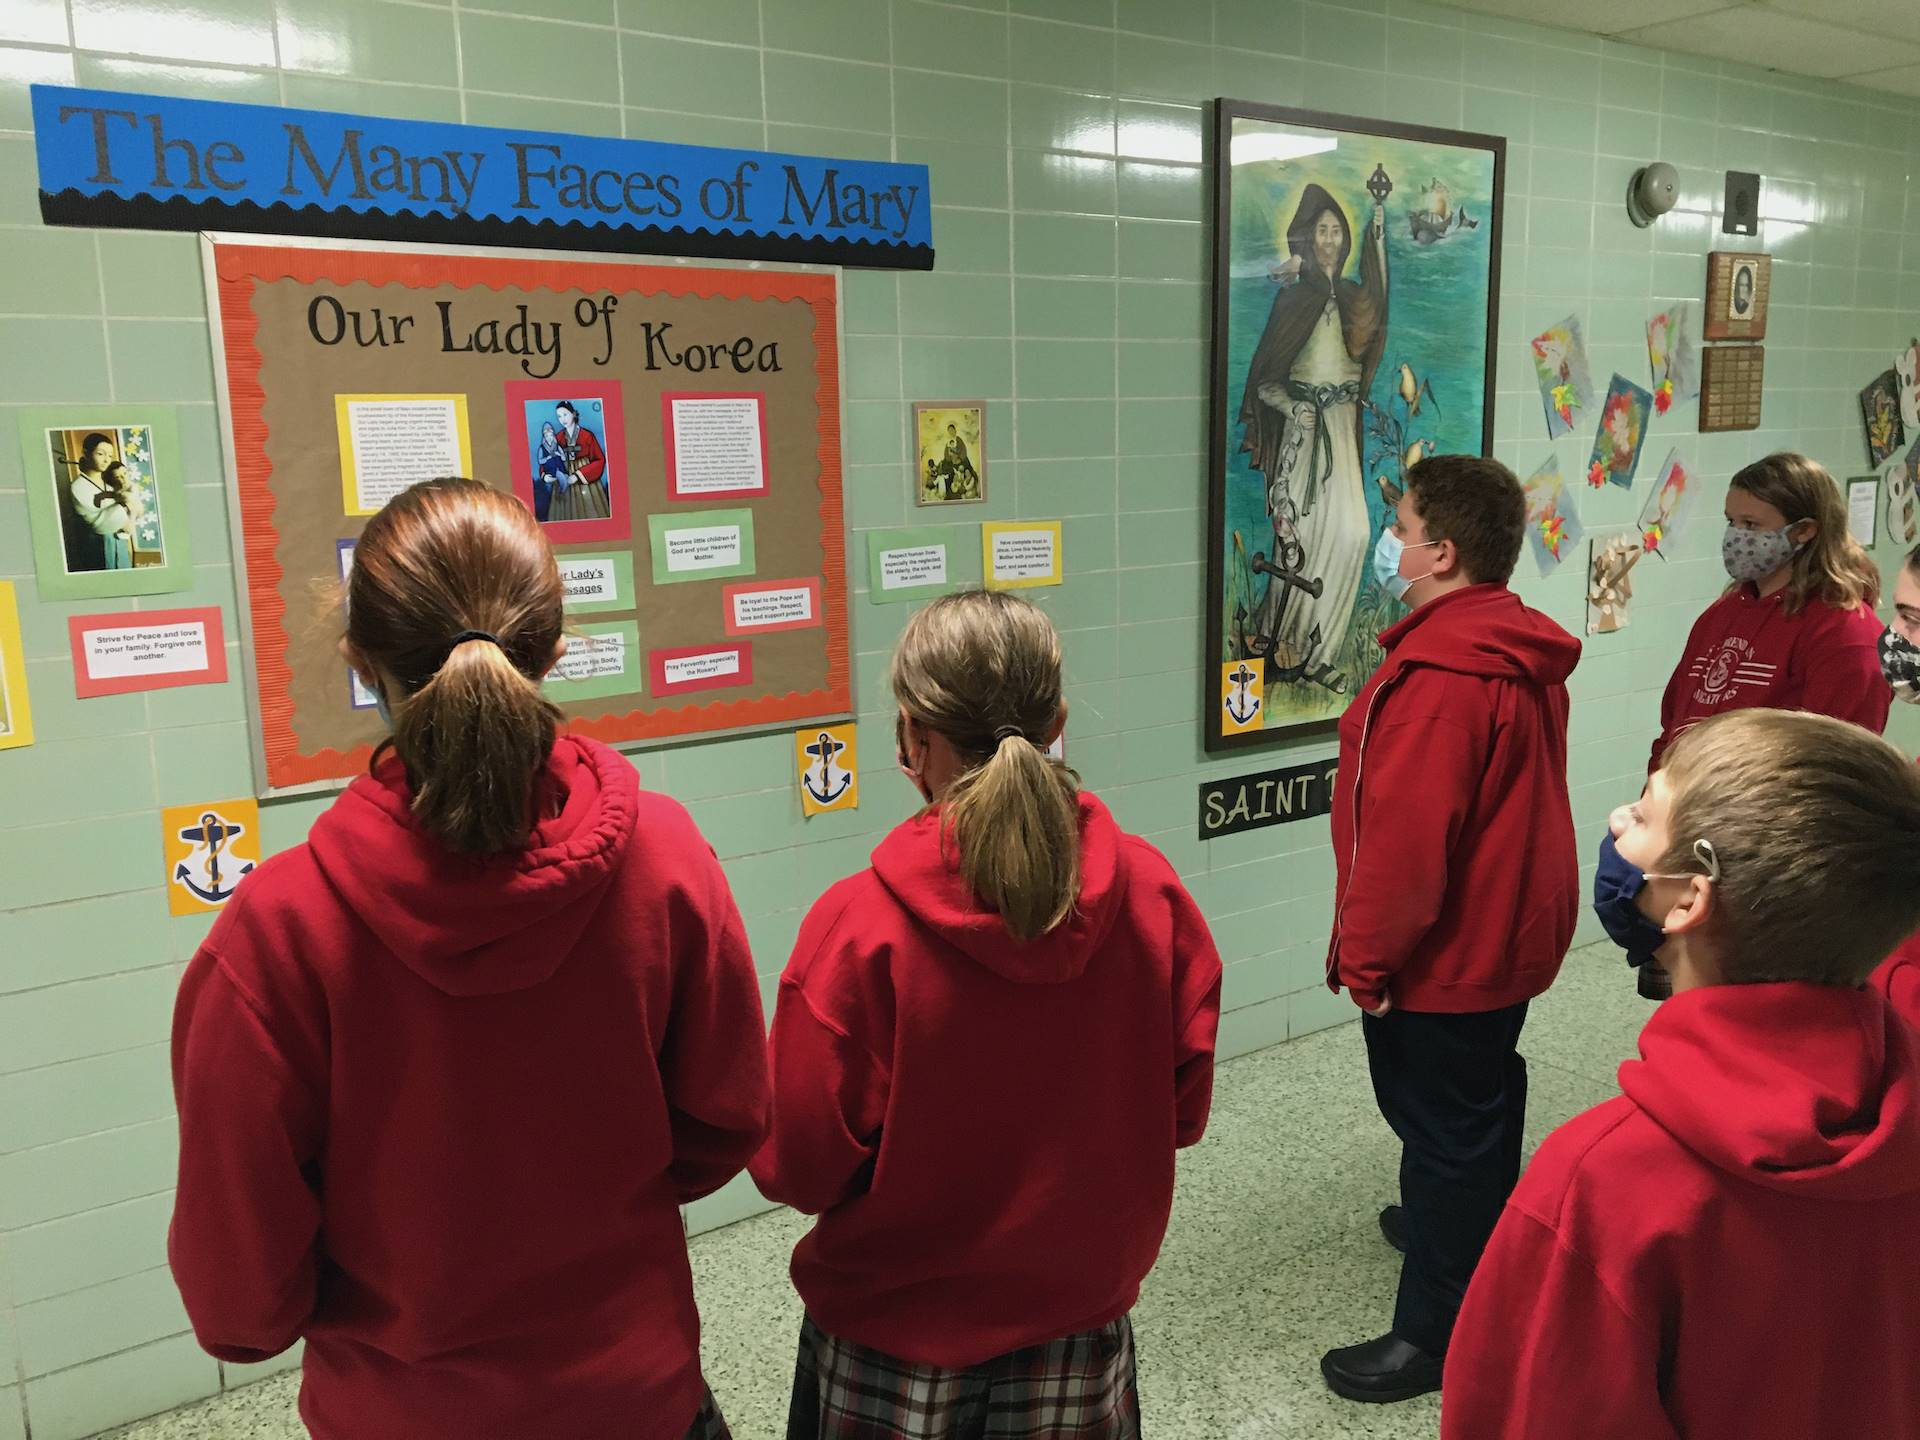 students use the Faces of mary bulletin board to learn about Mary of Korea